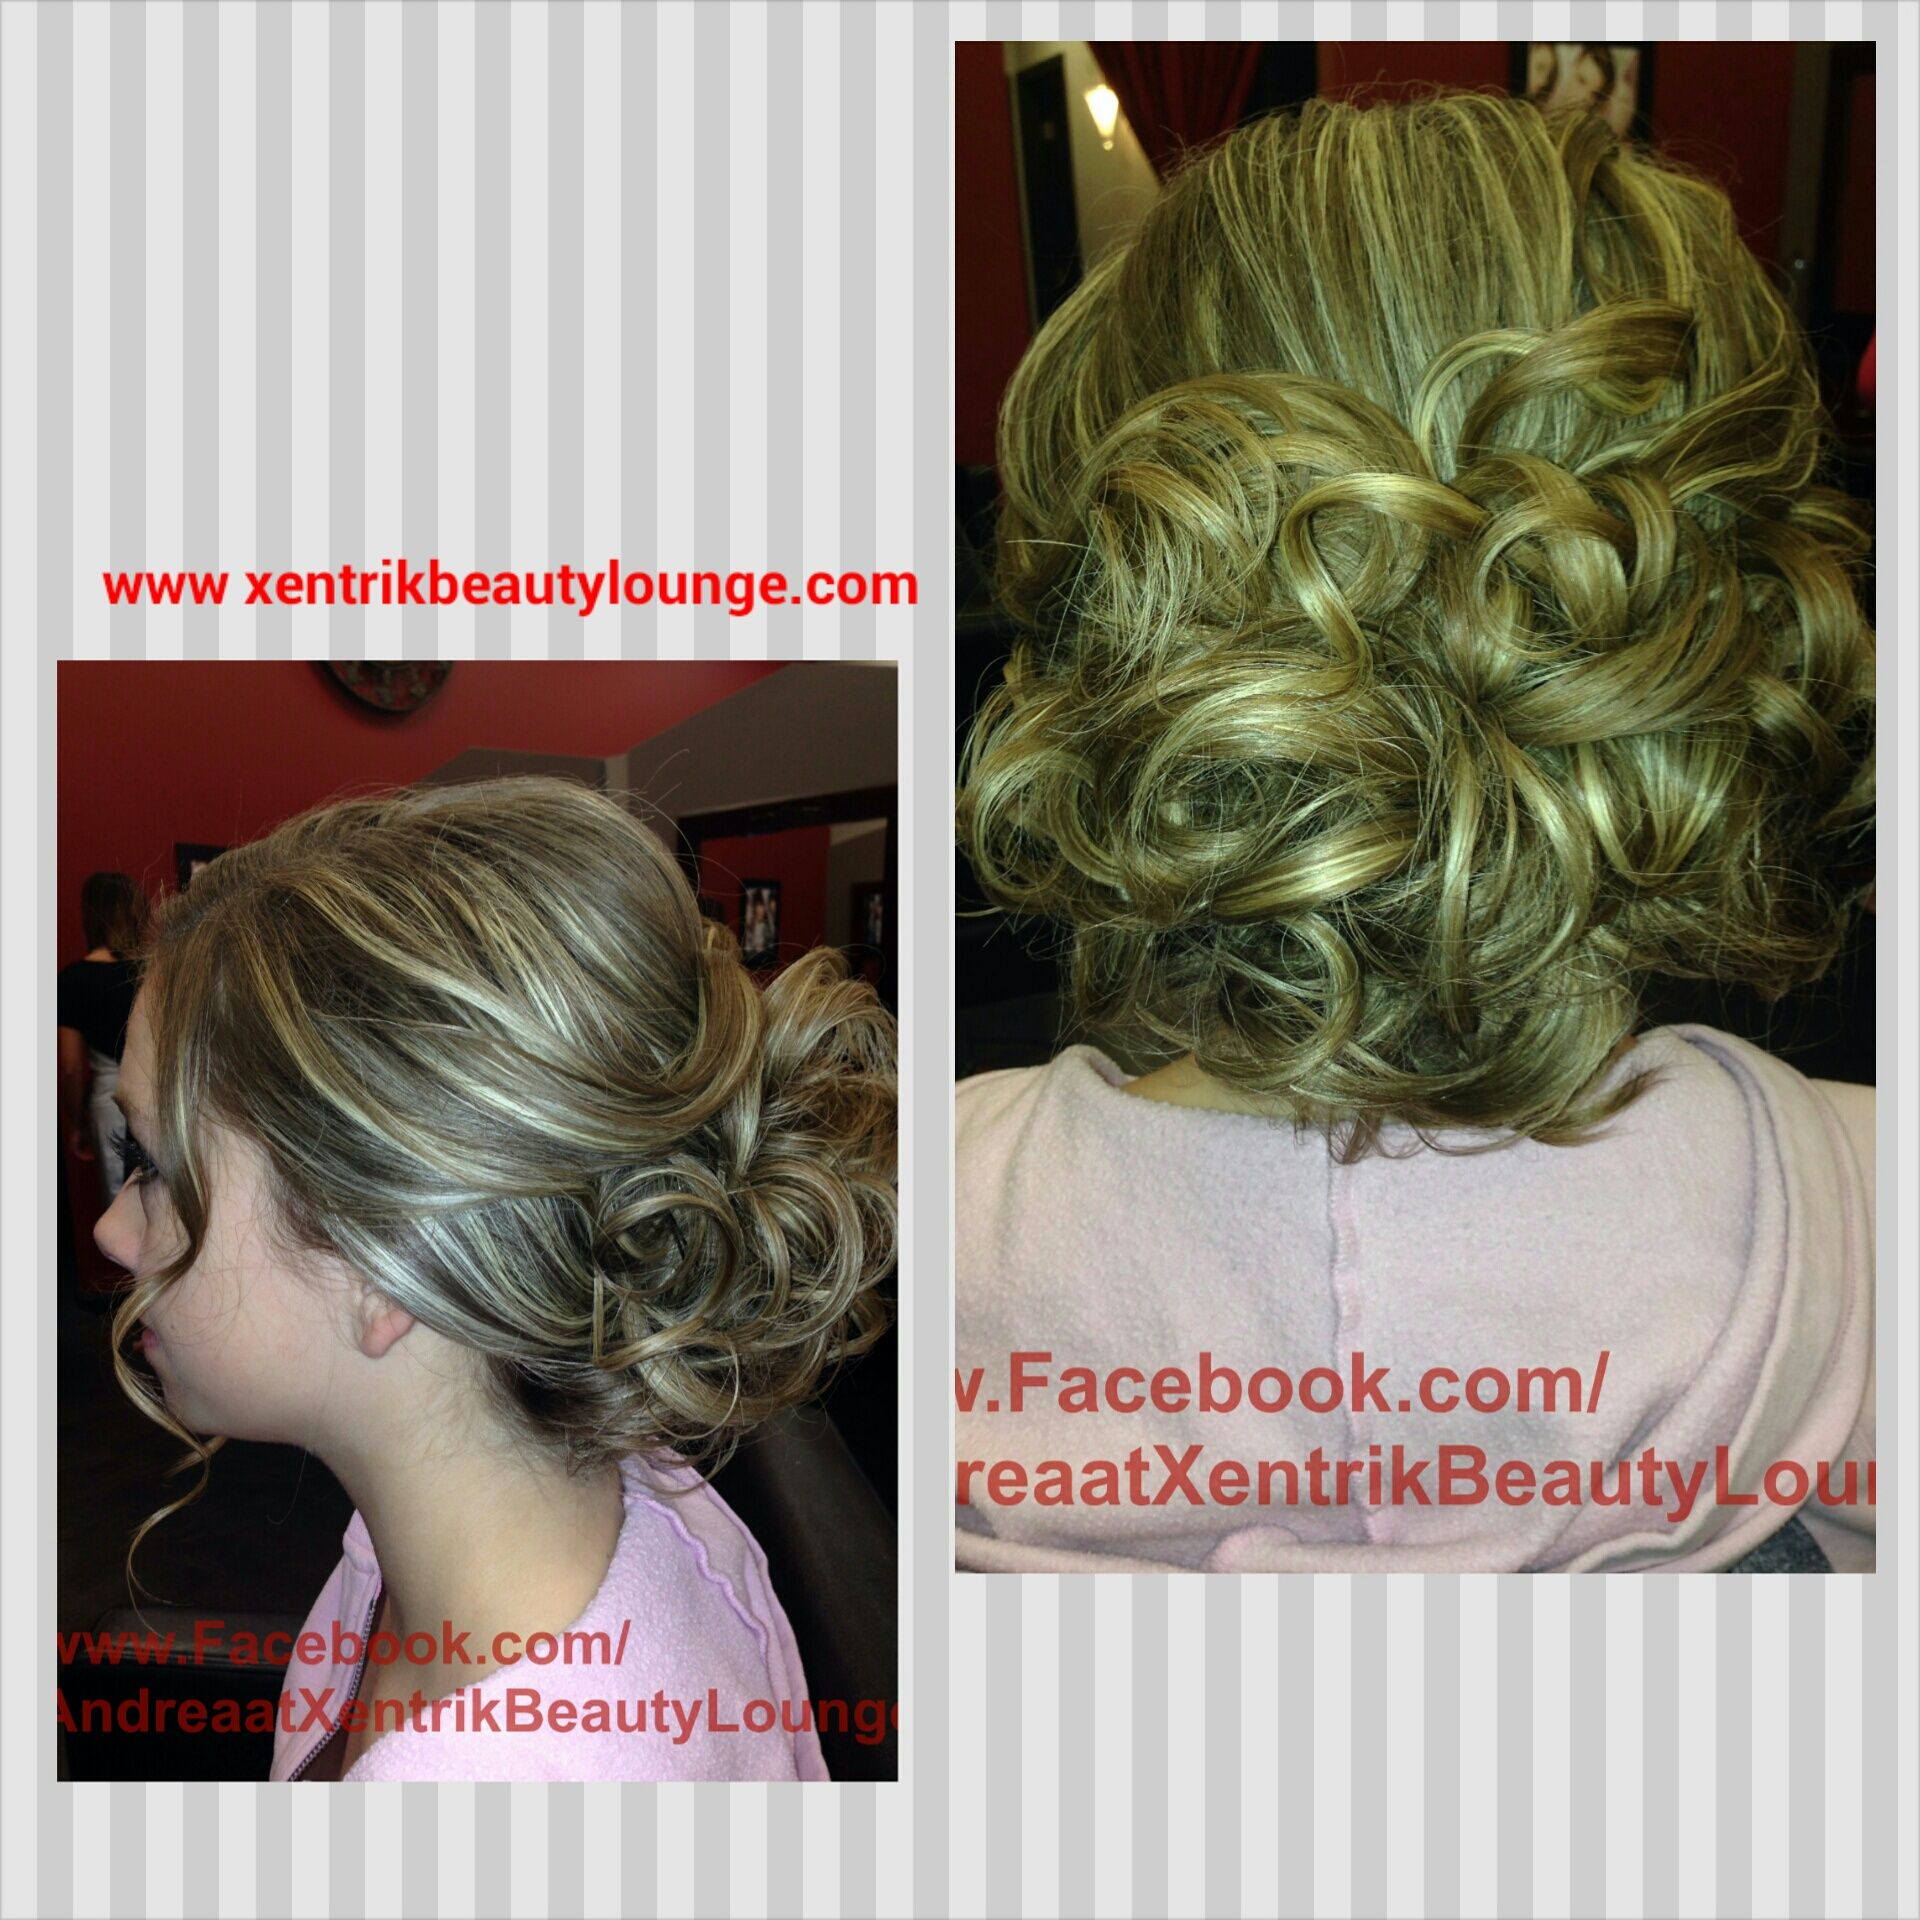 Homecoming 2014. #homecoming #lashes #updo #formalstyle